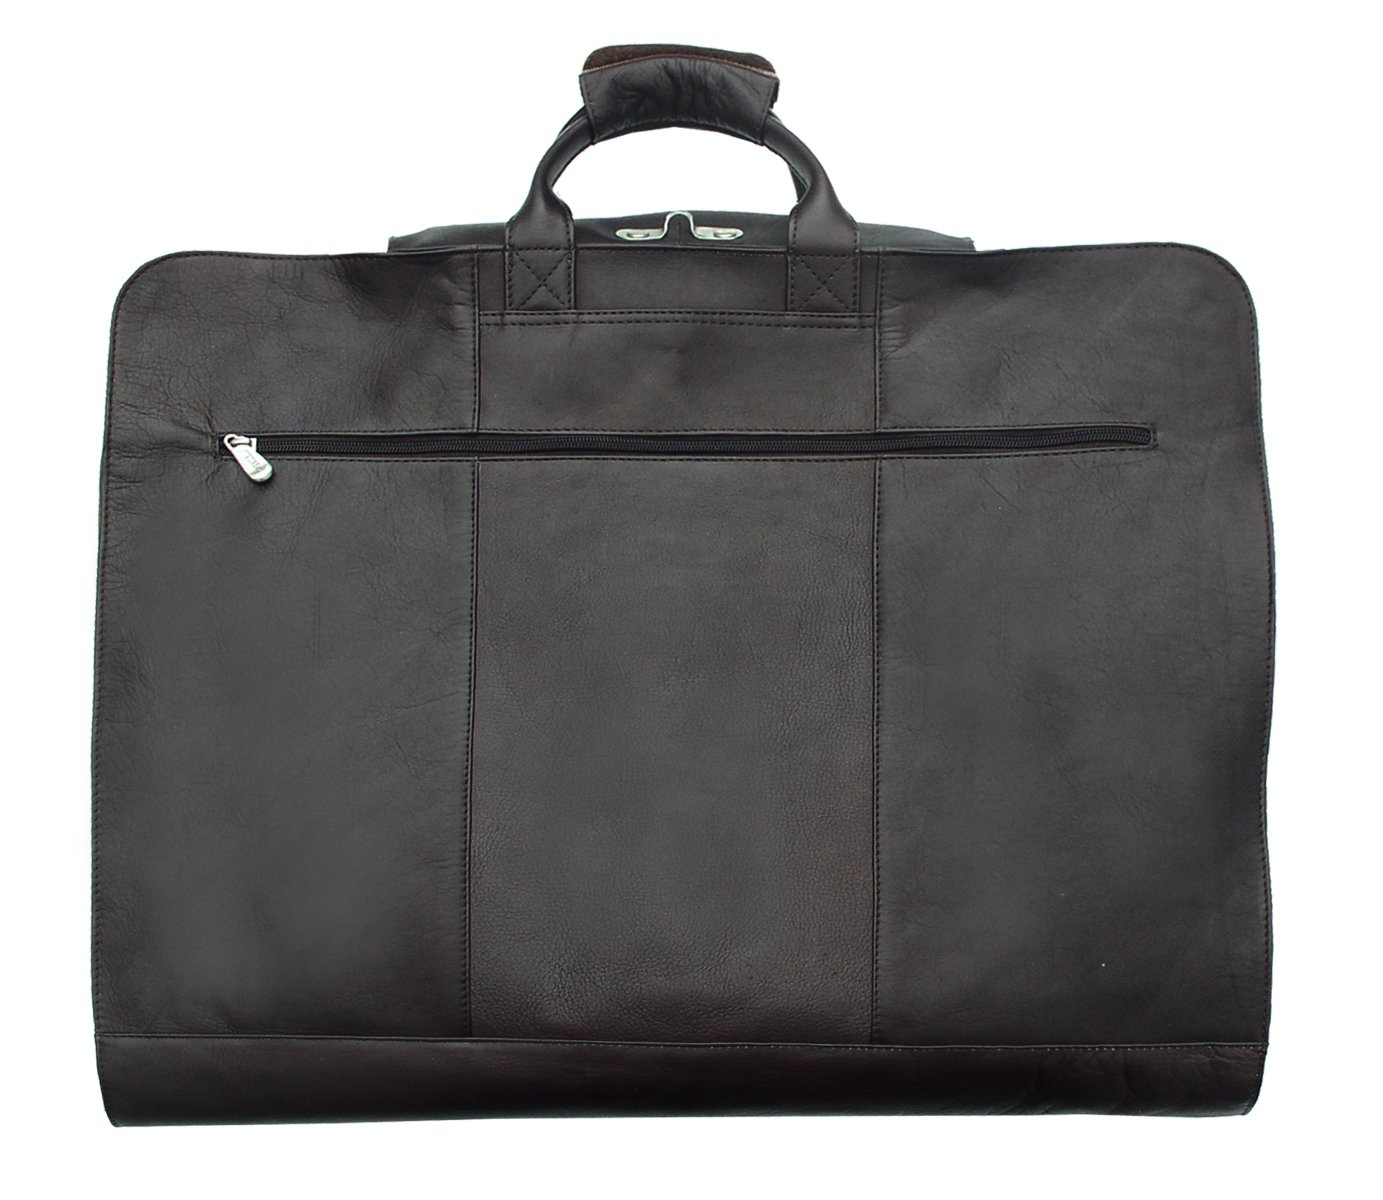 Piel Leather Traveler Garment Cover in Black by Piel Leather